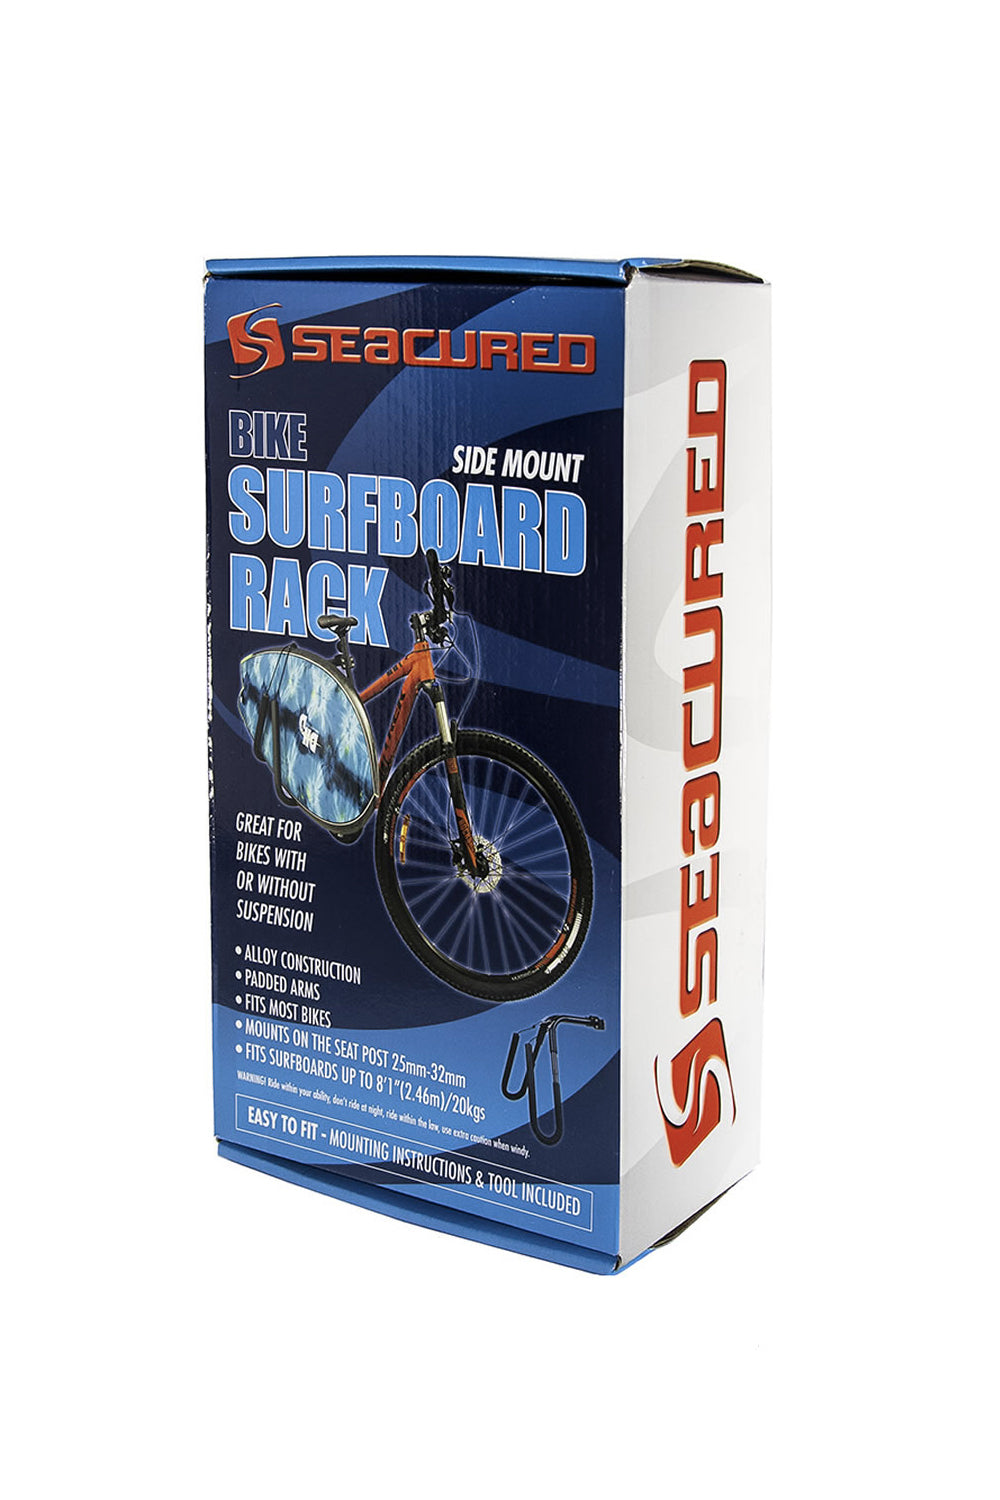 Seacured Bike Surfboard Side Rack